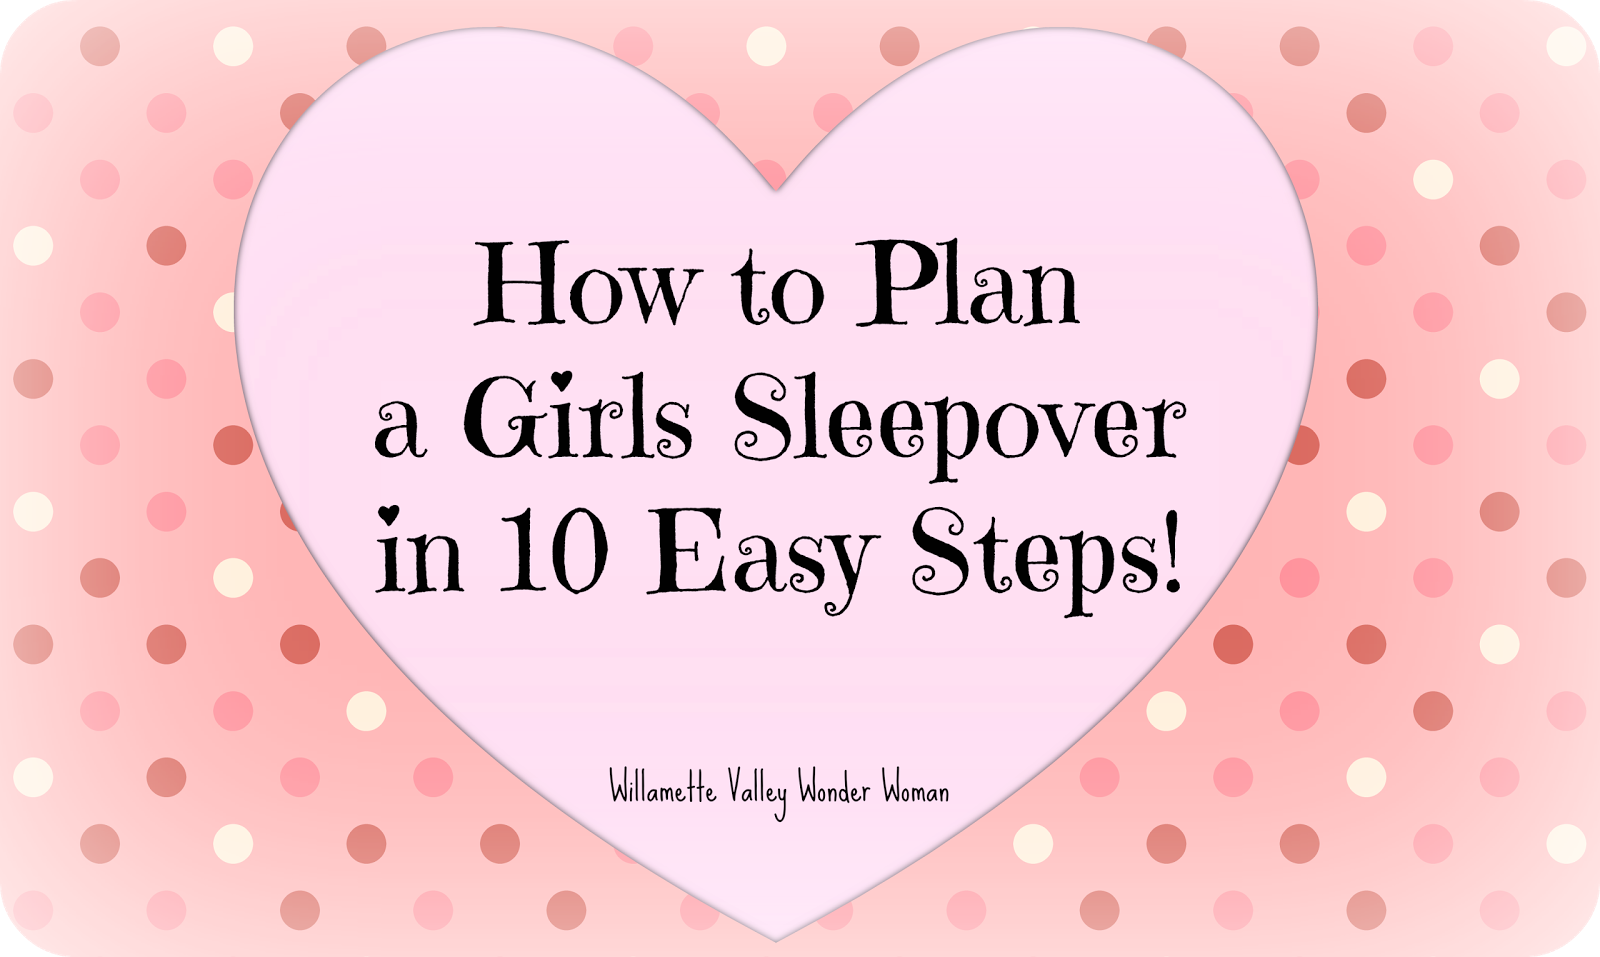 How to Plan a Girls Sleepover Slumber Party in 10 Easy Steps!